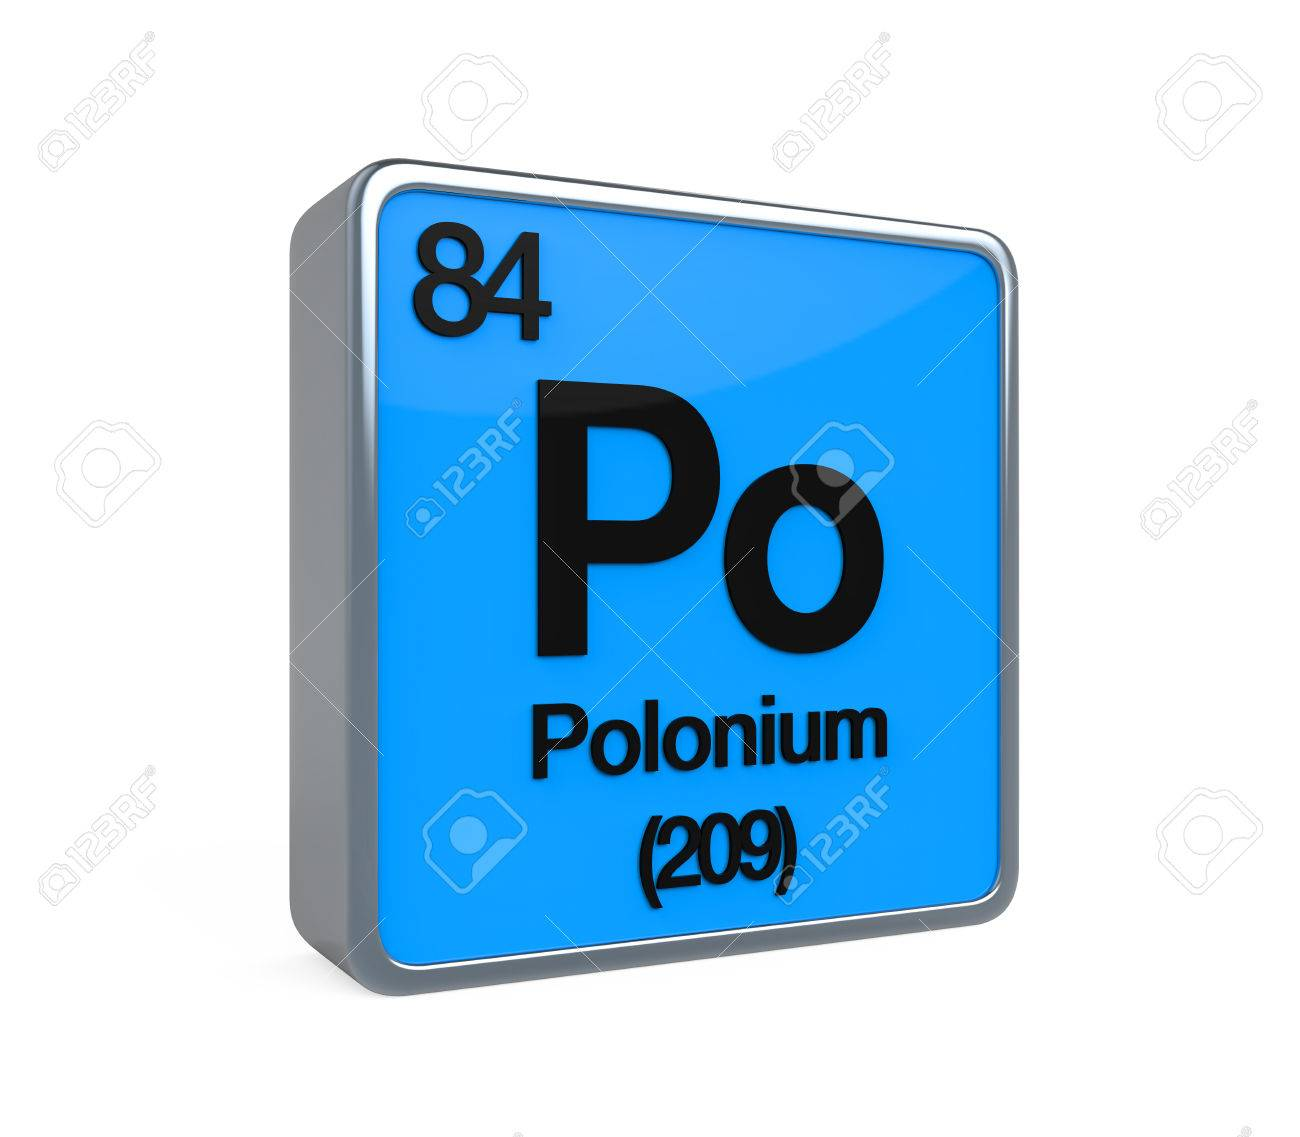 Po element periodic table image collections periodic table images po element periodic table image collections periodic table images po element periodic table images periodic table gamestrikefo Image collections